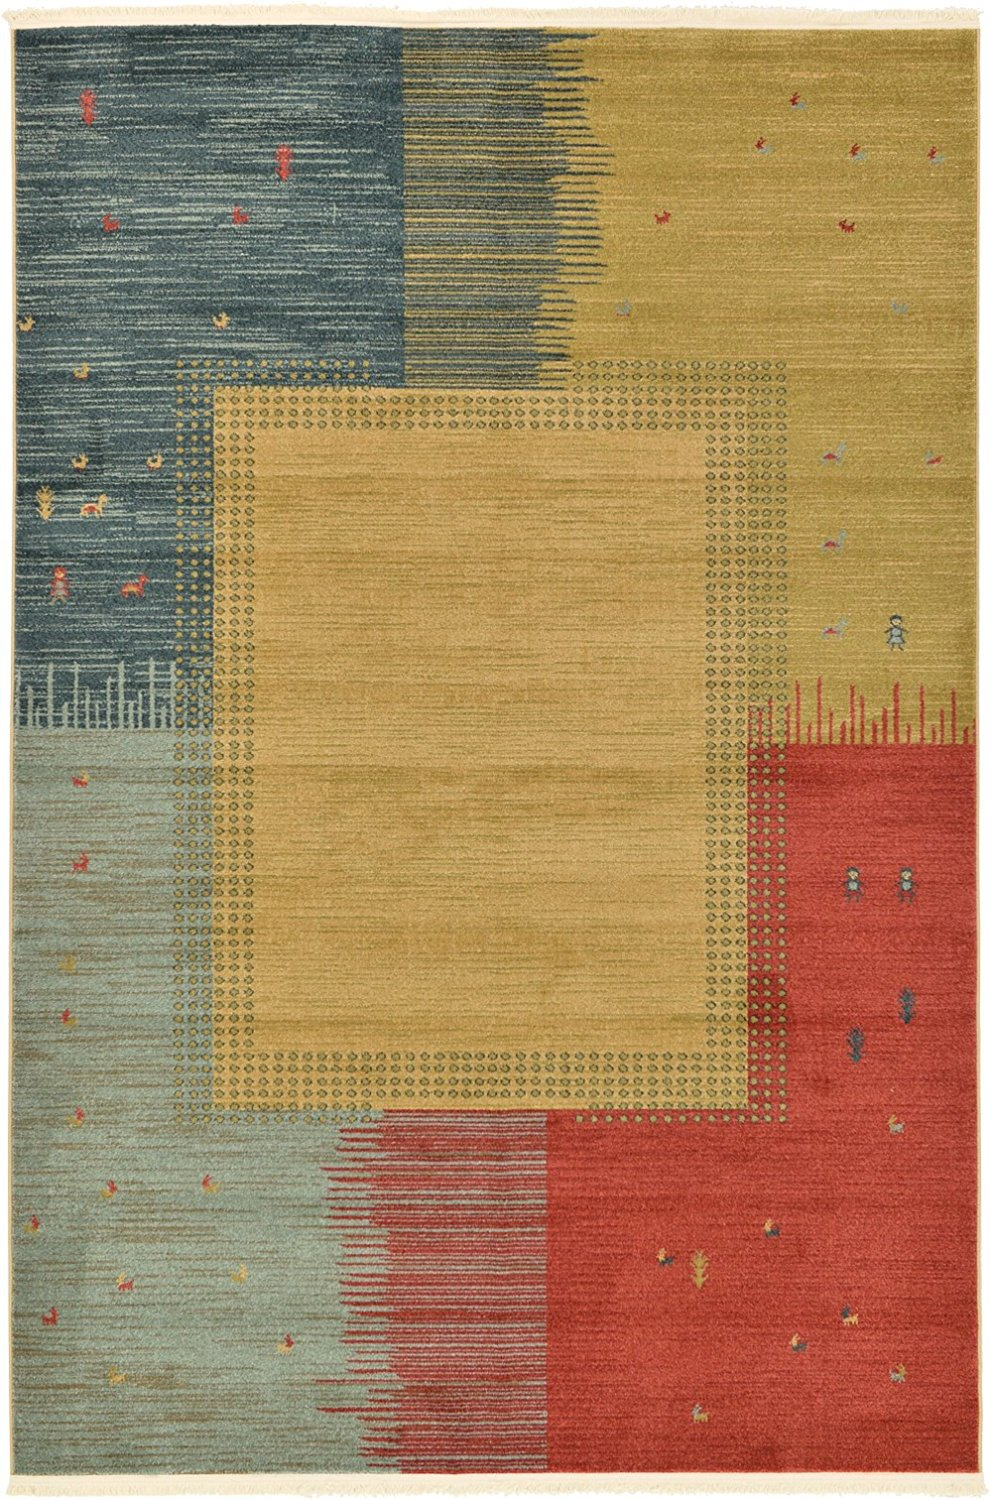 A2Z Rug 6-Feed-by-9-Feed Gabbeh Collection Area Rug - Tan Modern & Traditional rugs for living room - rugs for dining room & bedroom - Floor Carpet